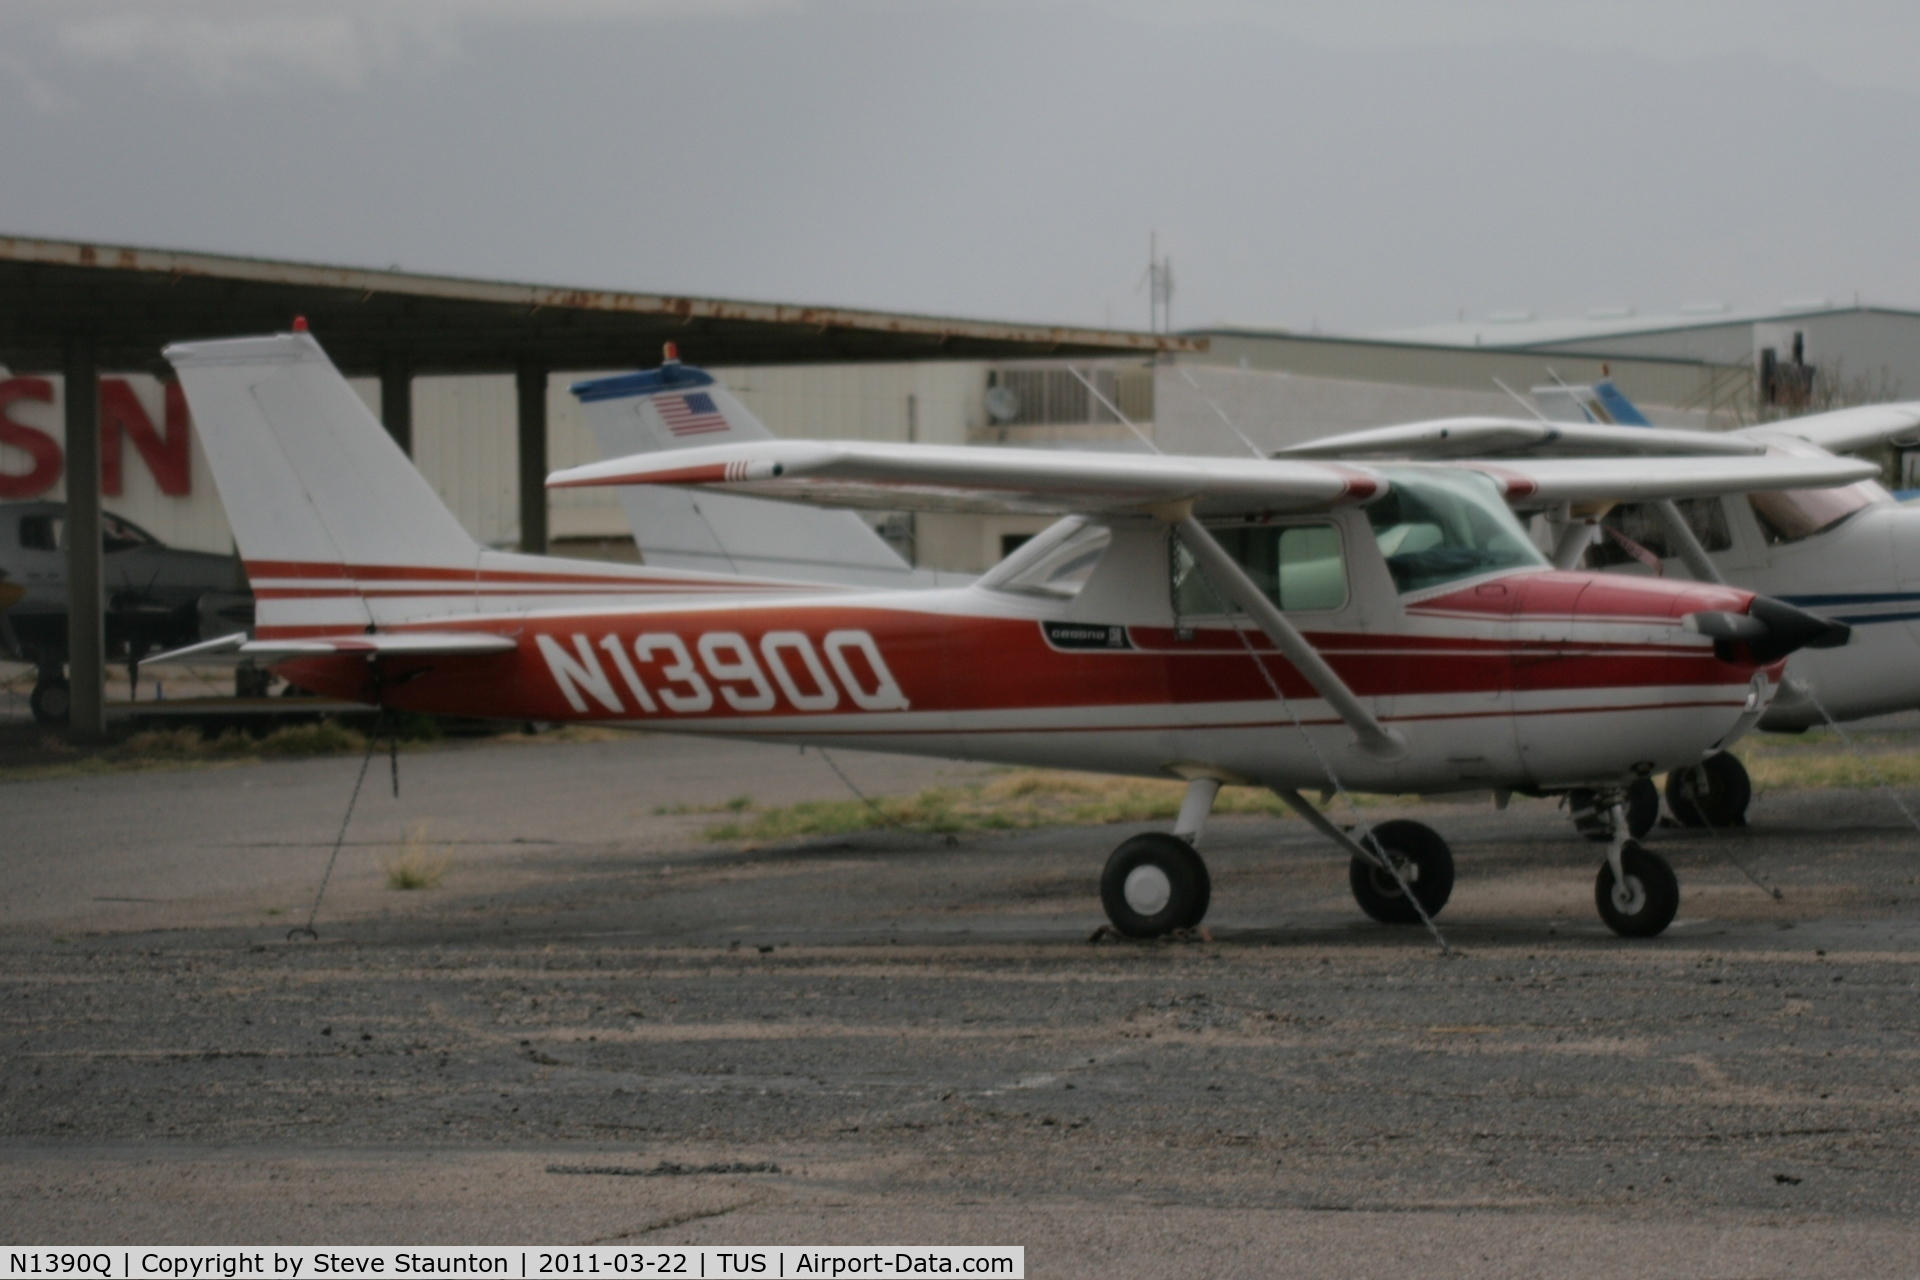 N1390Q, 1971 Cessna 150L C/N 15072690, Taken at Tucson International Airport, in March 2011 whilst on an Aeroprint Aviation tour